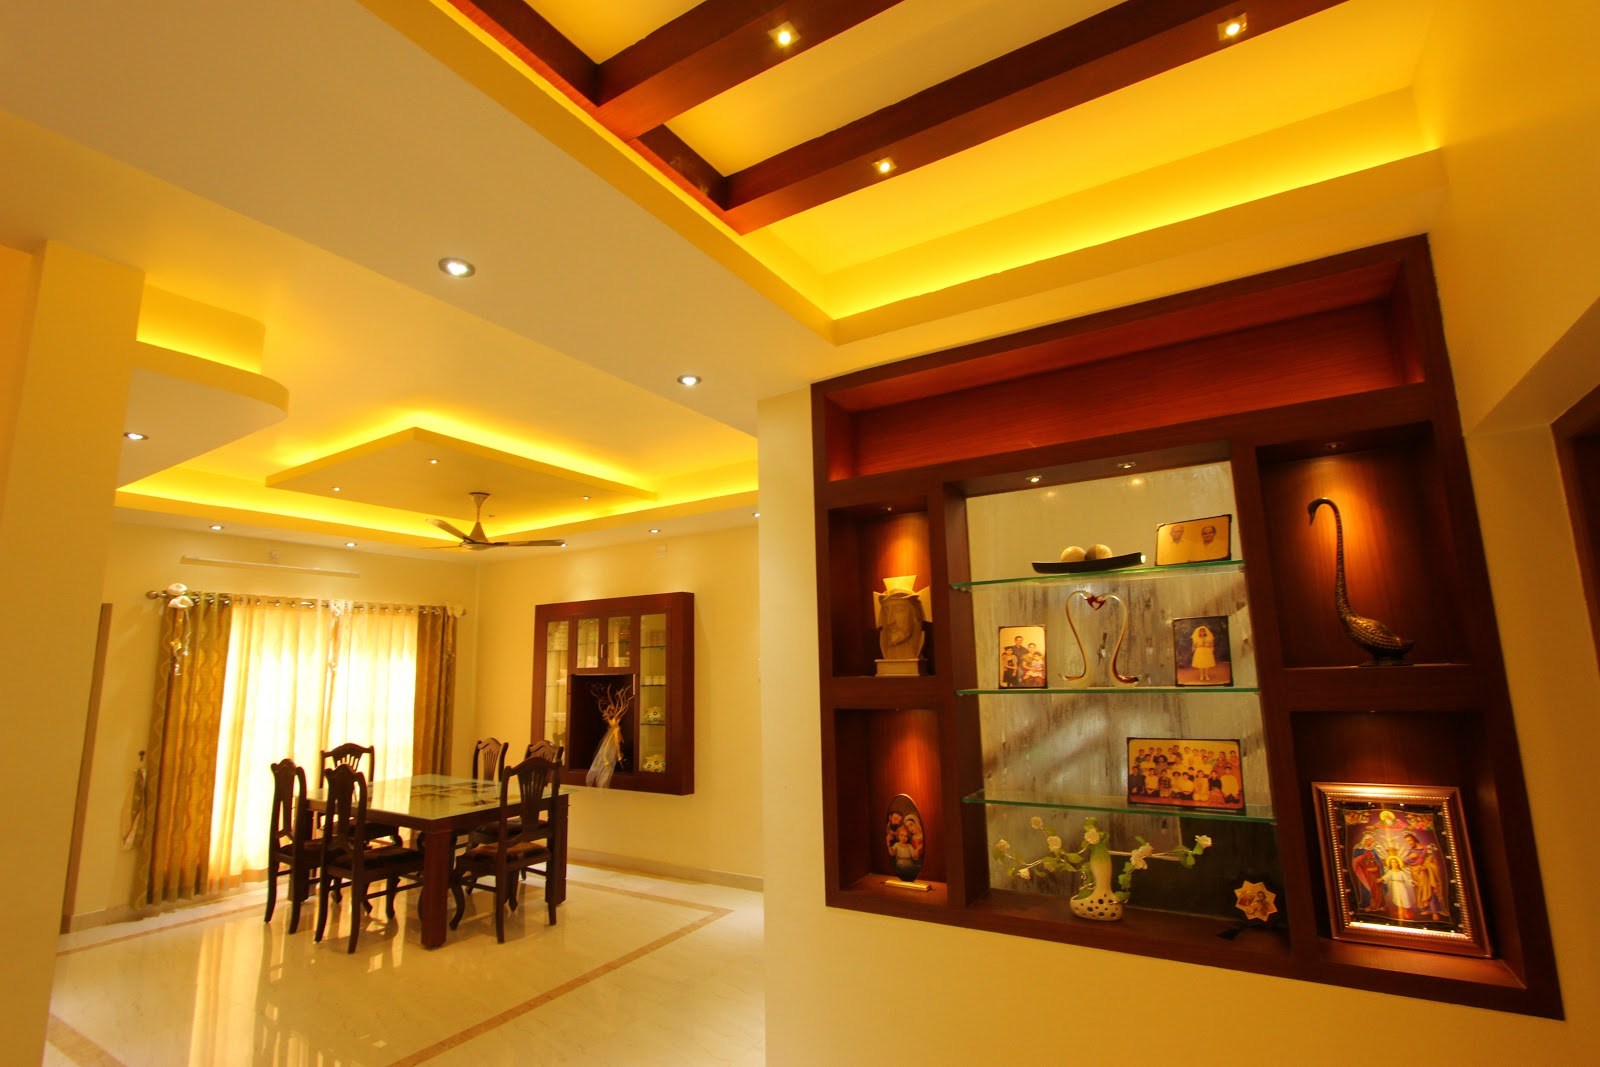 Shilpakala interiors award winning home interior design for Kerala interior designs